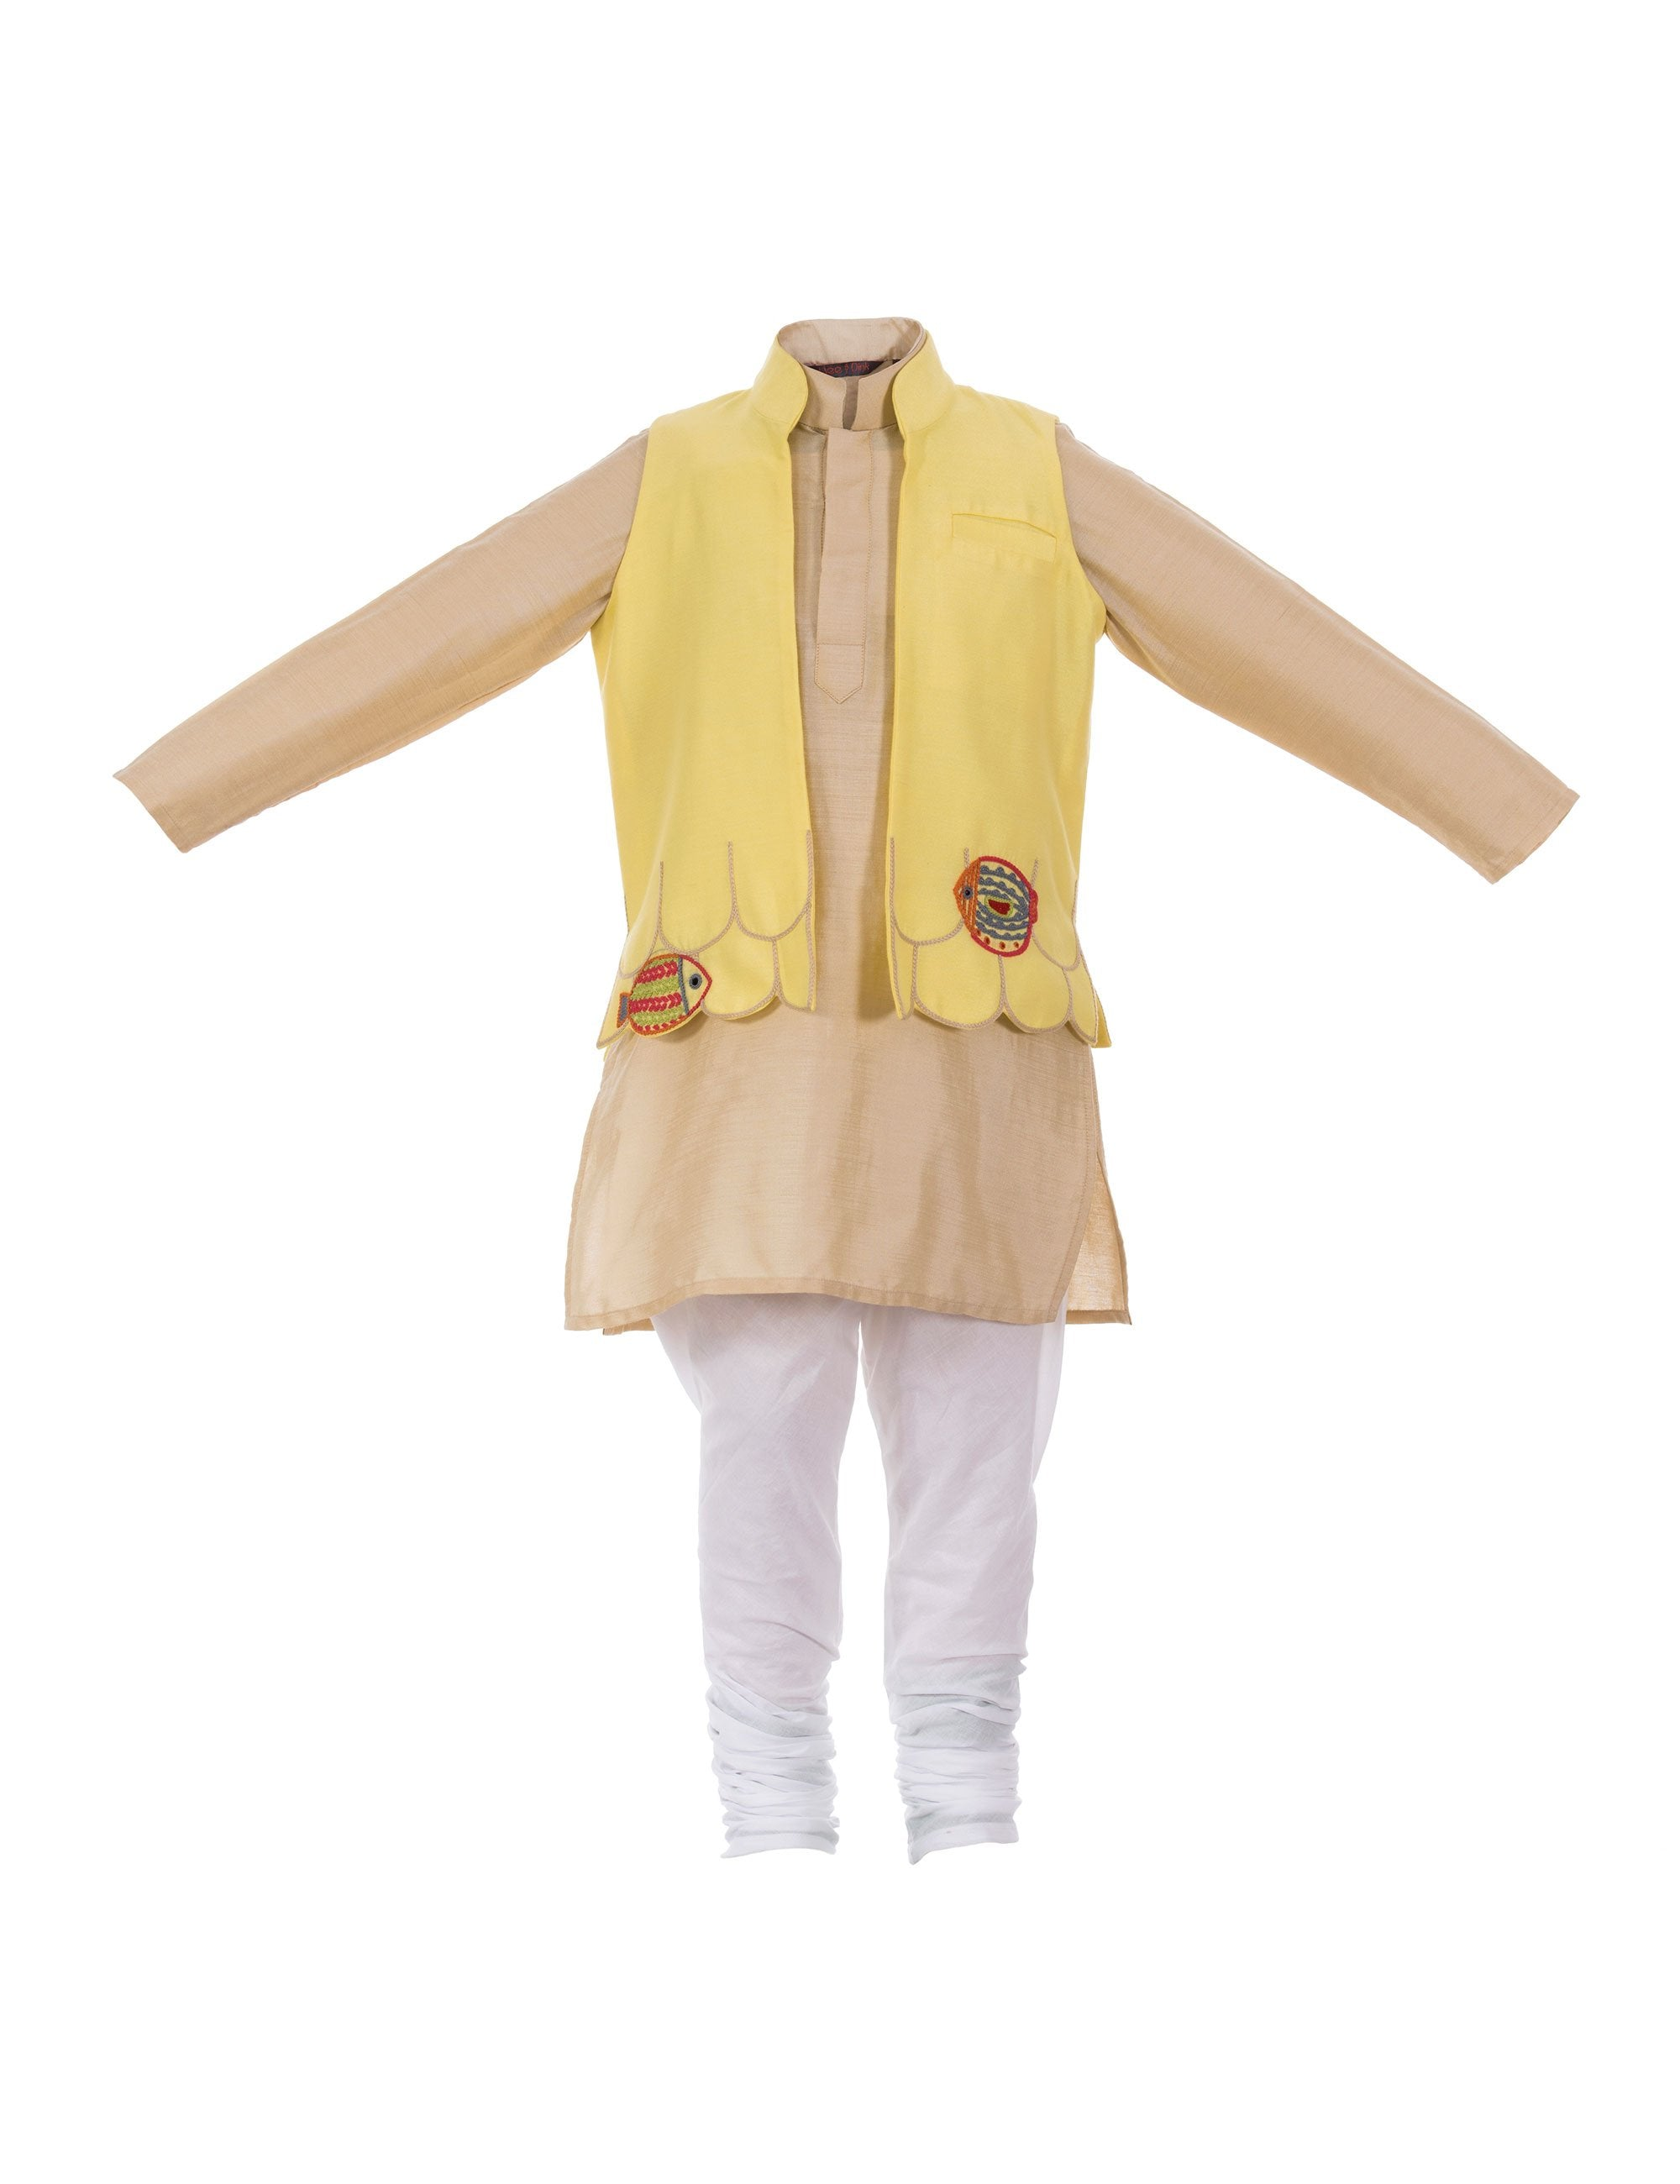 Save Our Seas Bandhgala with Kurta in Yellow for Boys